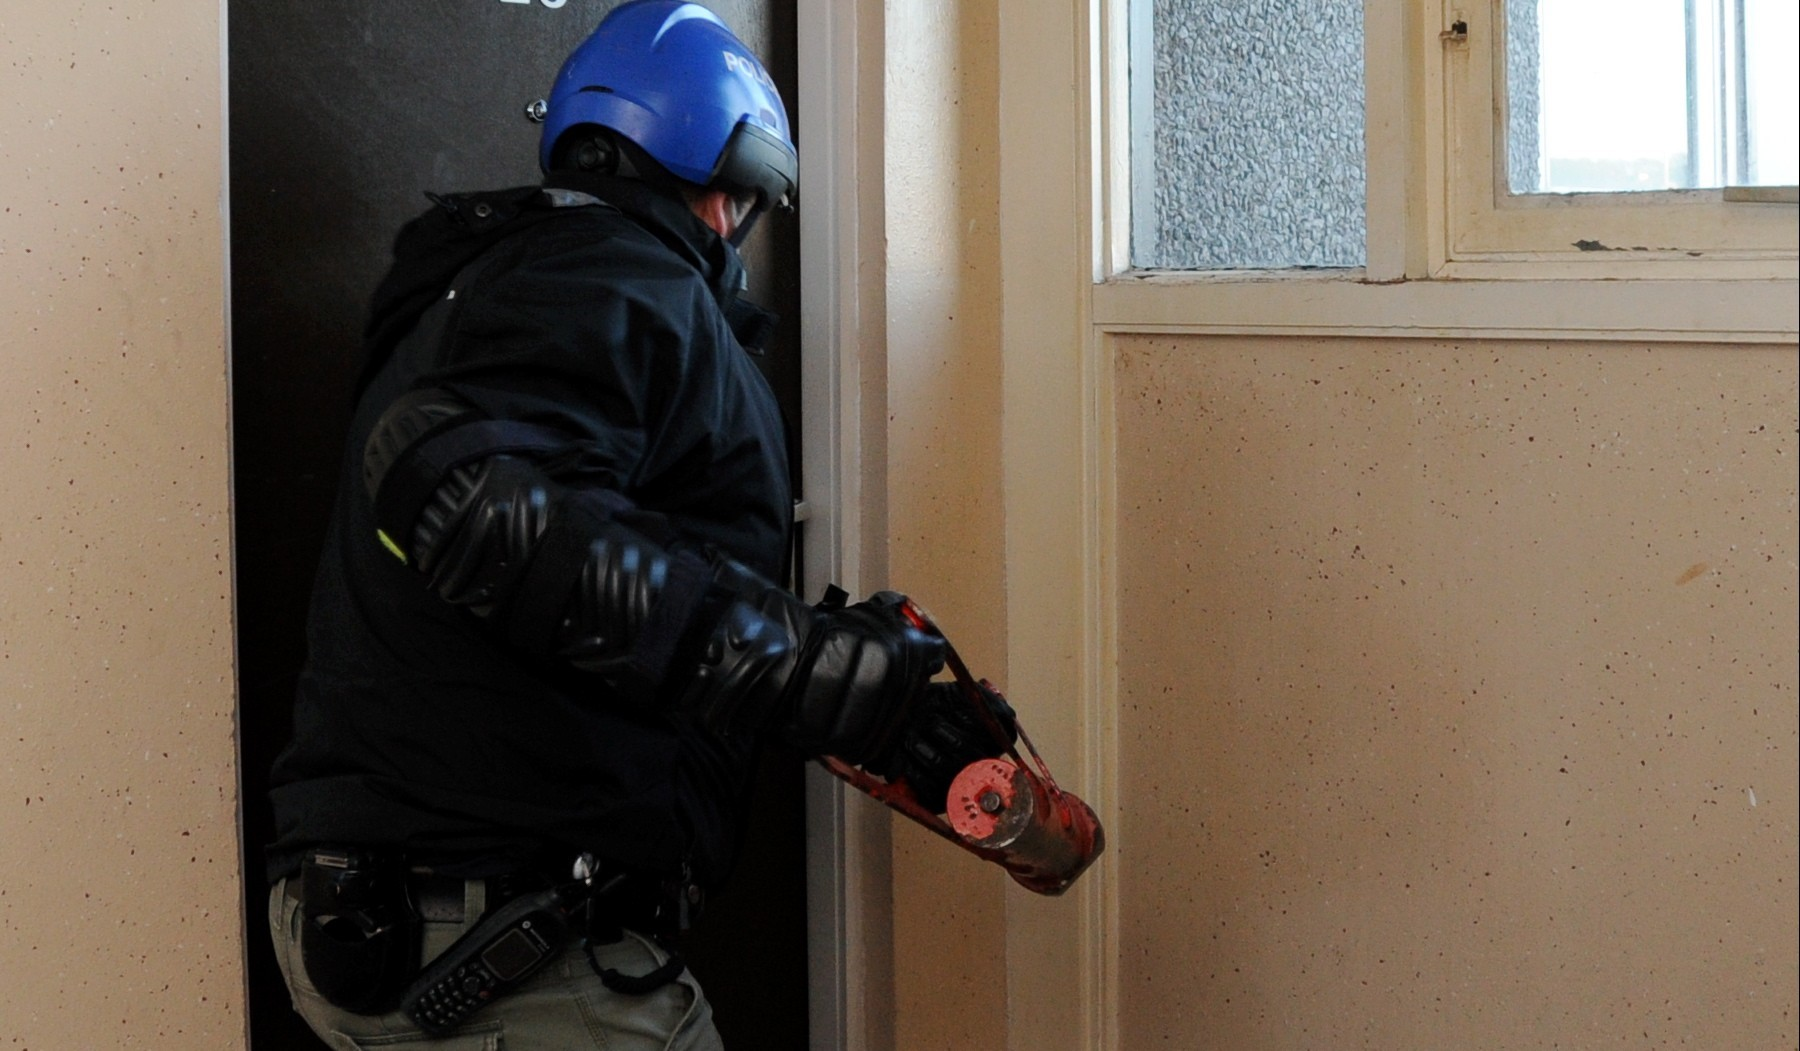 An officer breaks down a door. Pictures by Kath Flannery